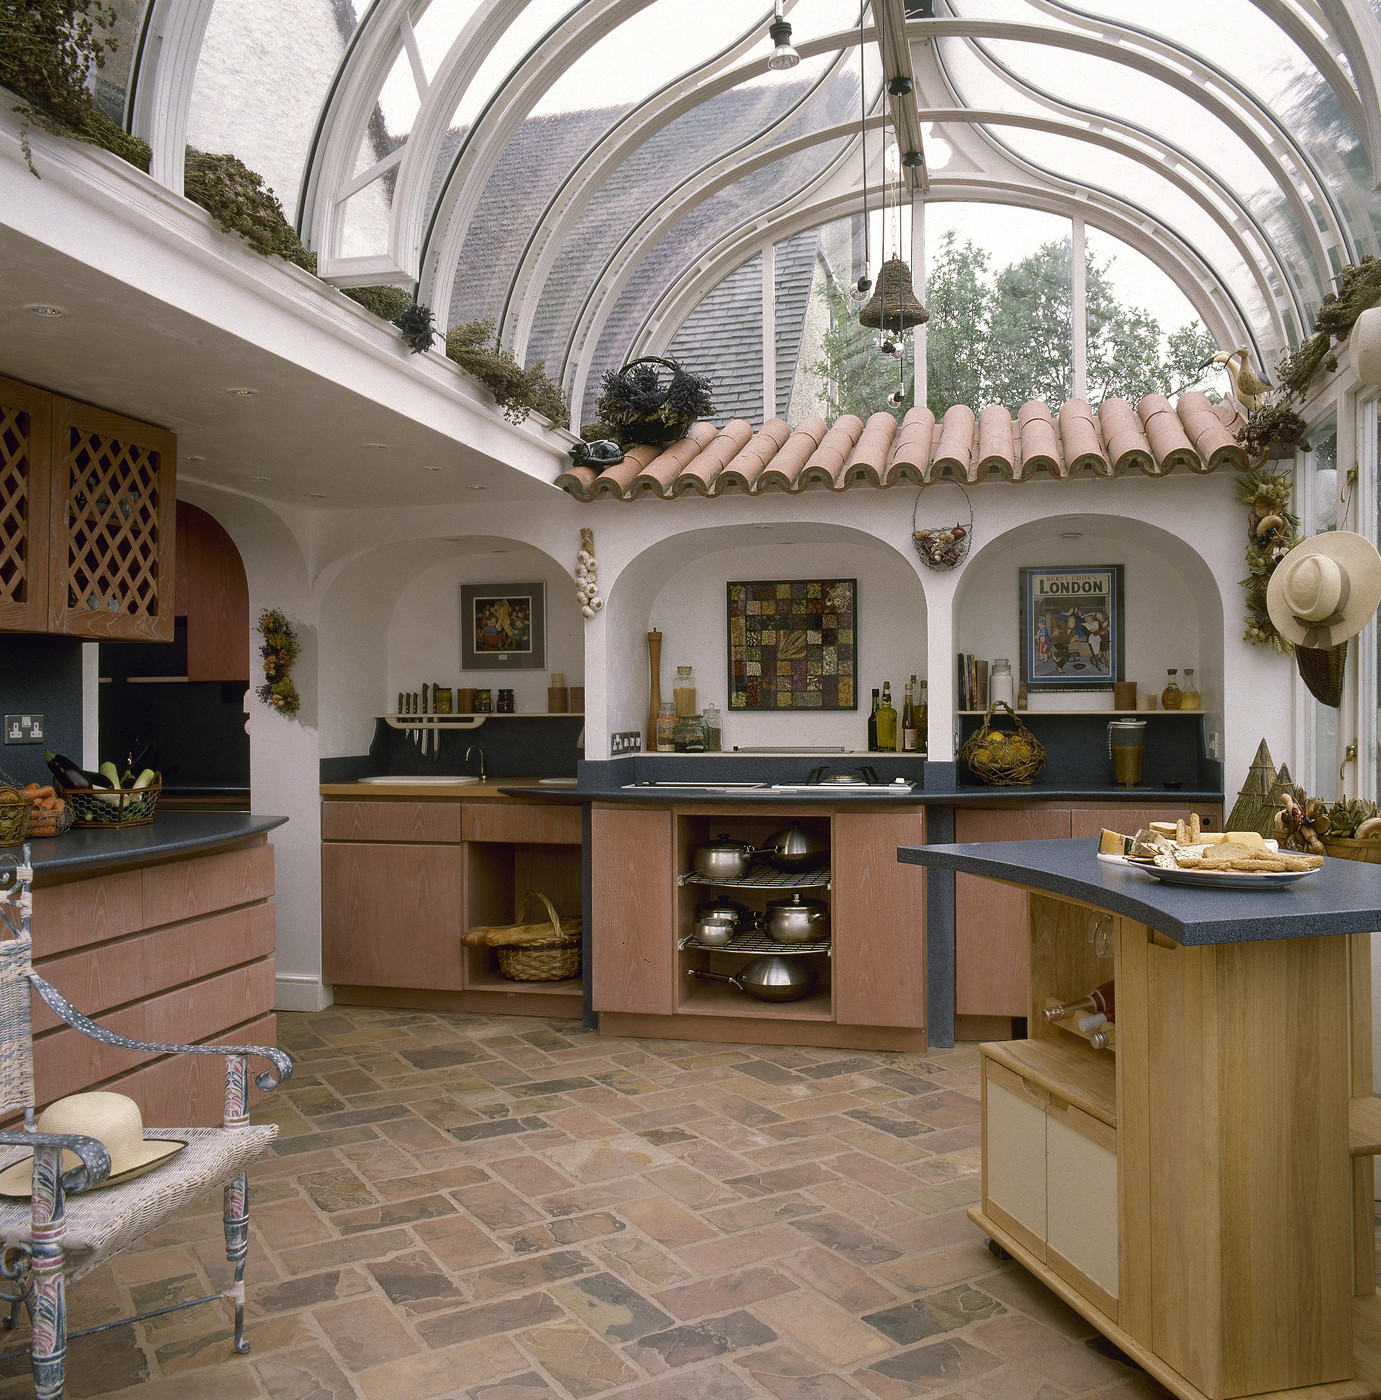 A Taste Of Mediterranean Kitchens